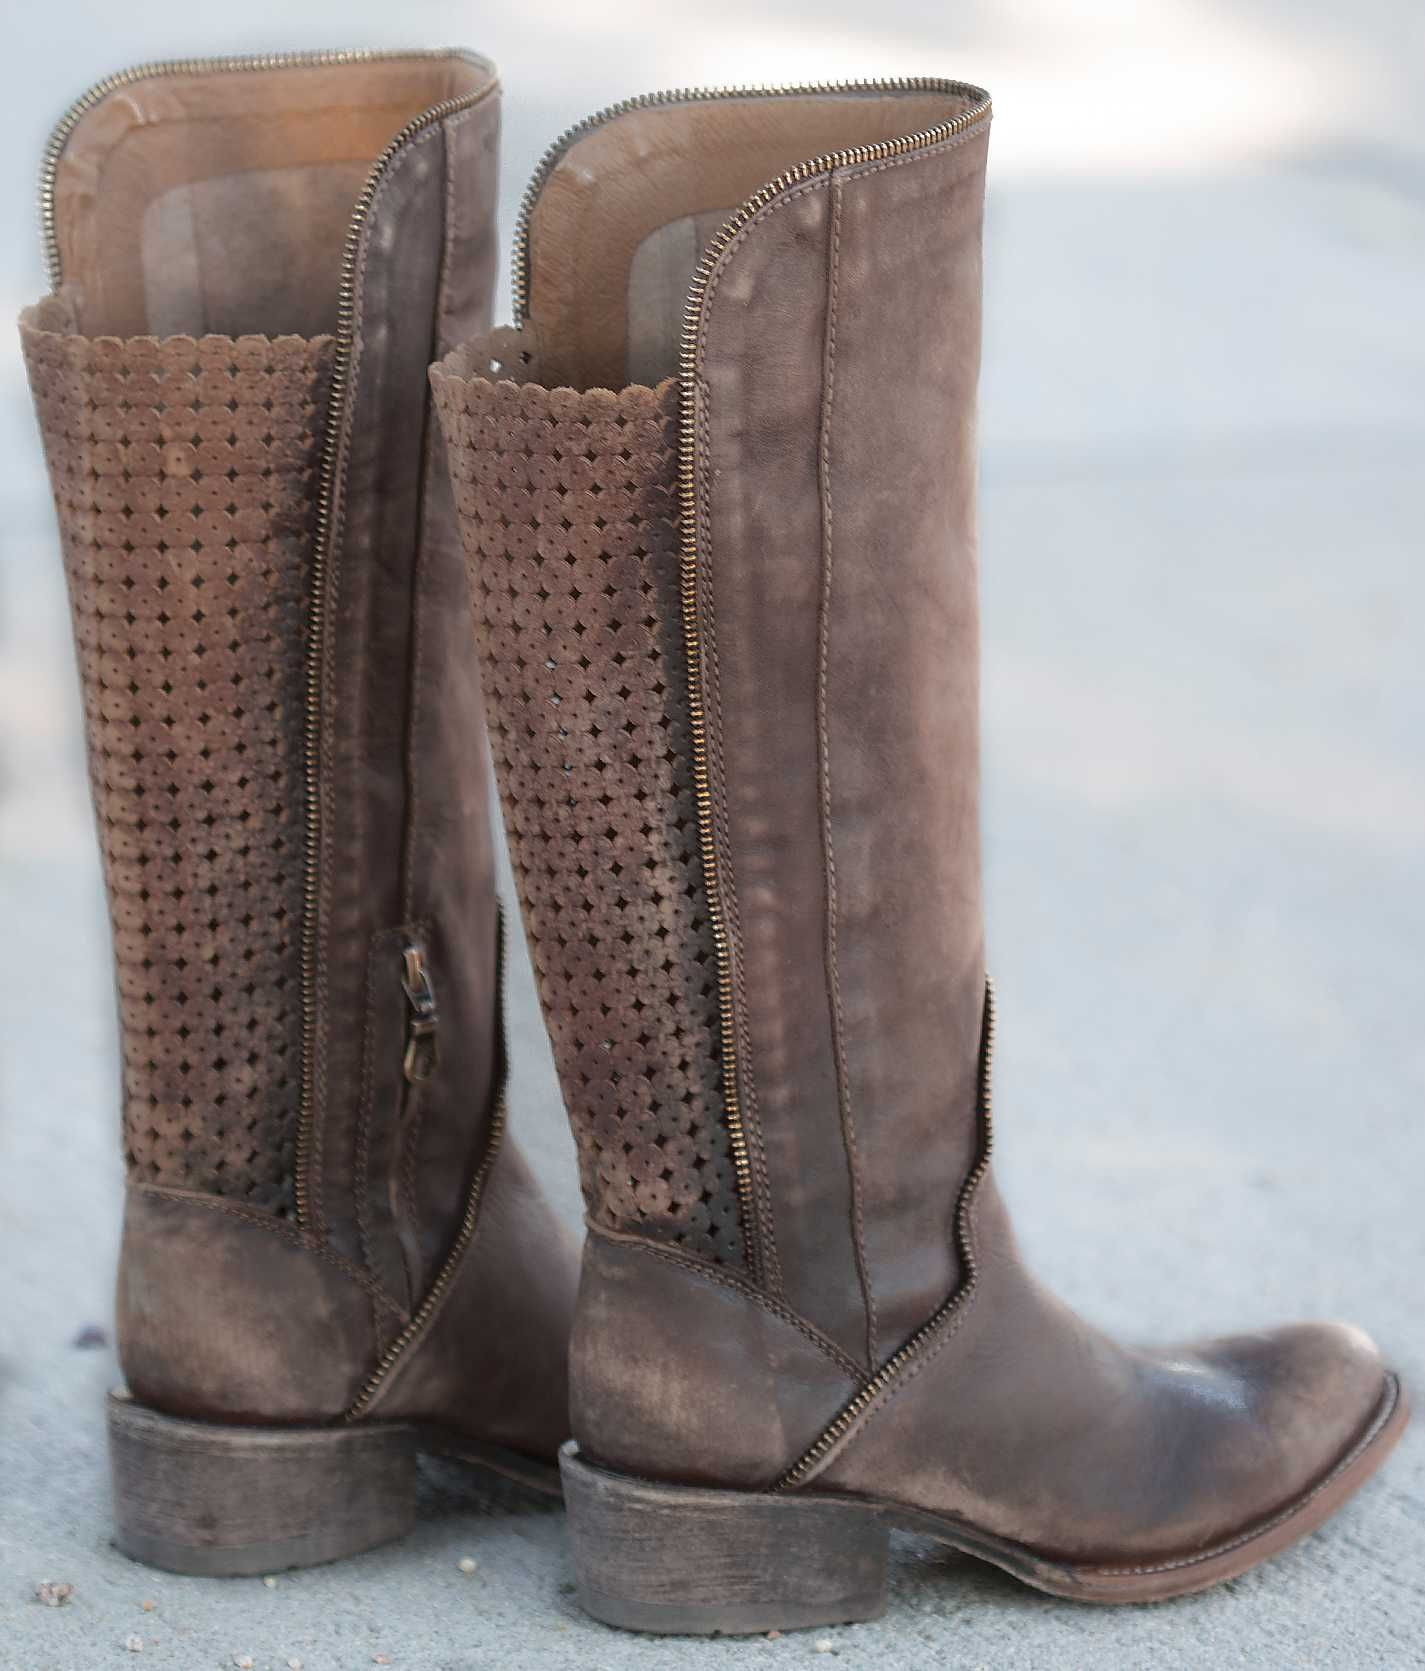 Indie Spirit by Corral Distressed Riding Boot - Women s Shoes ... bd4b6a84c58